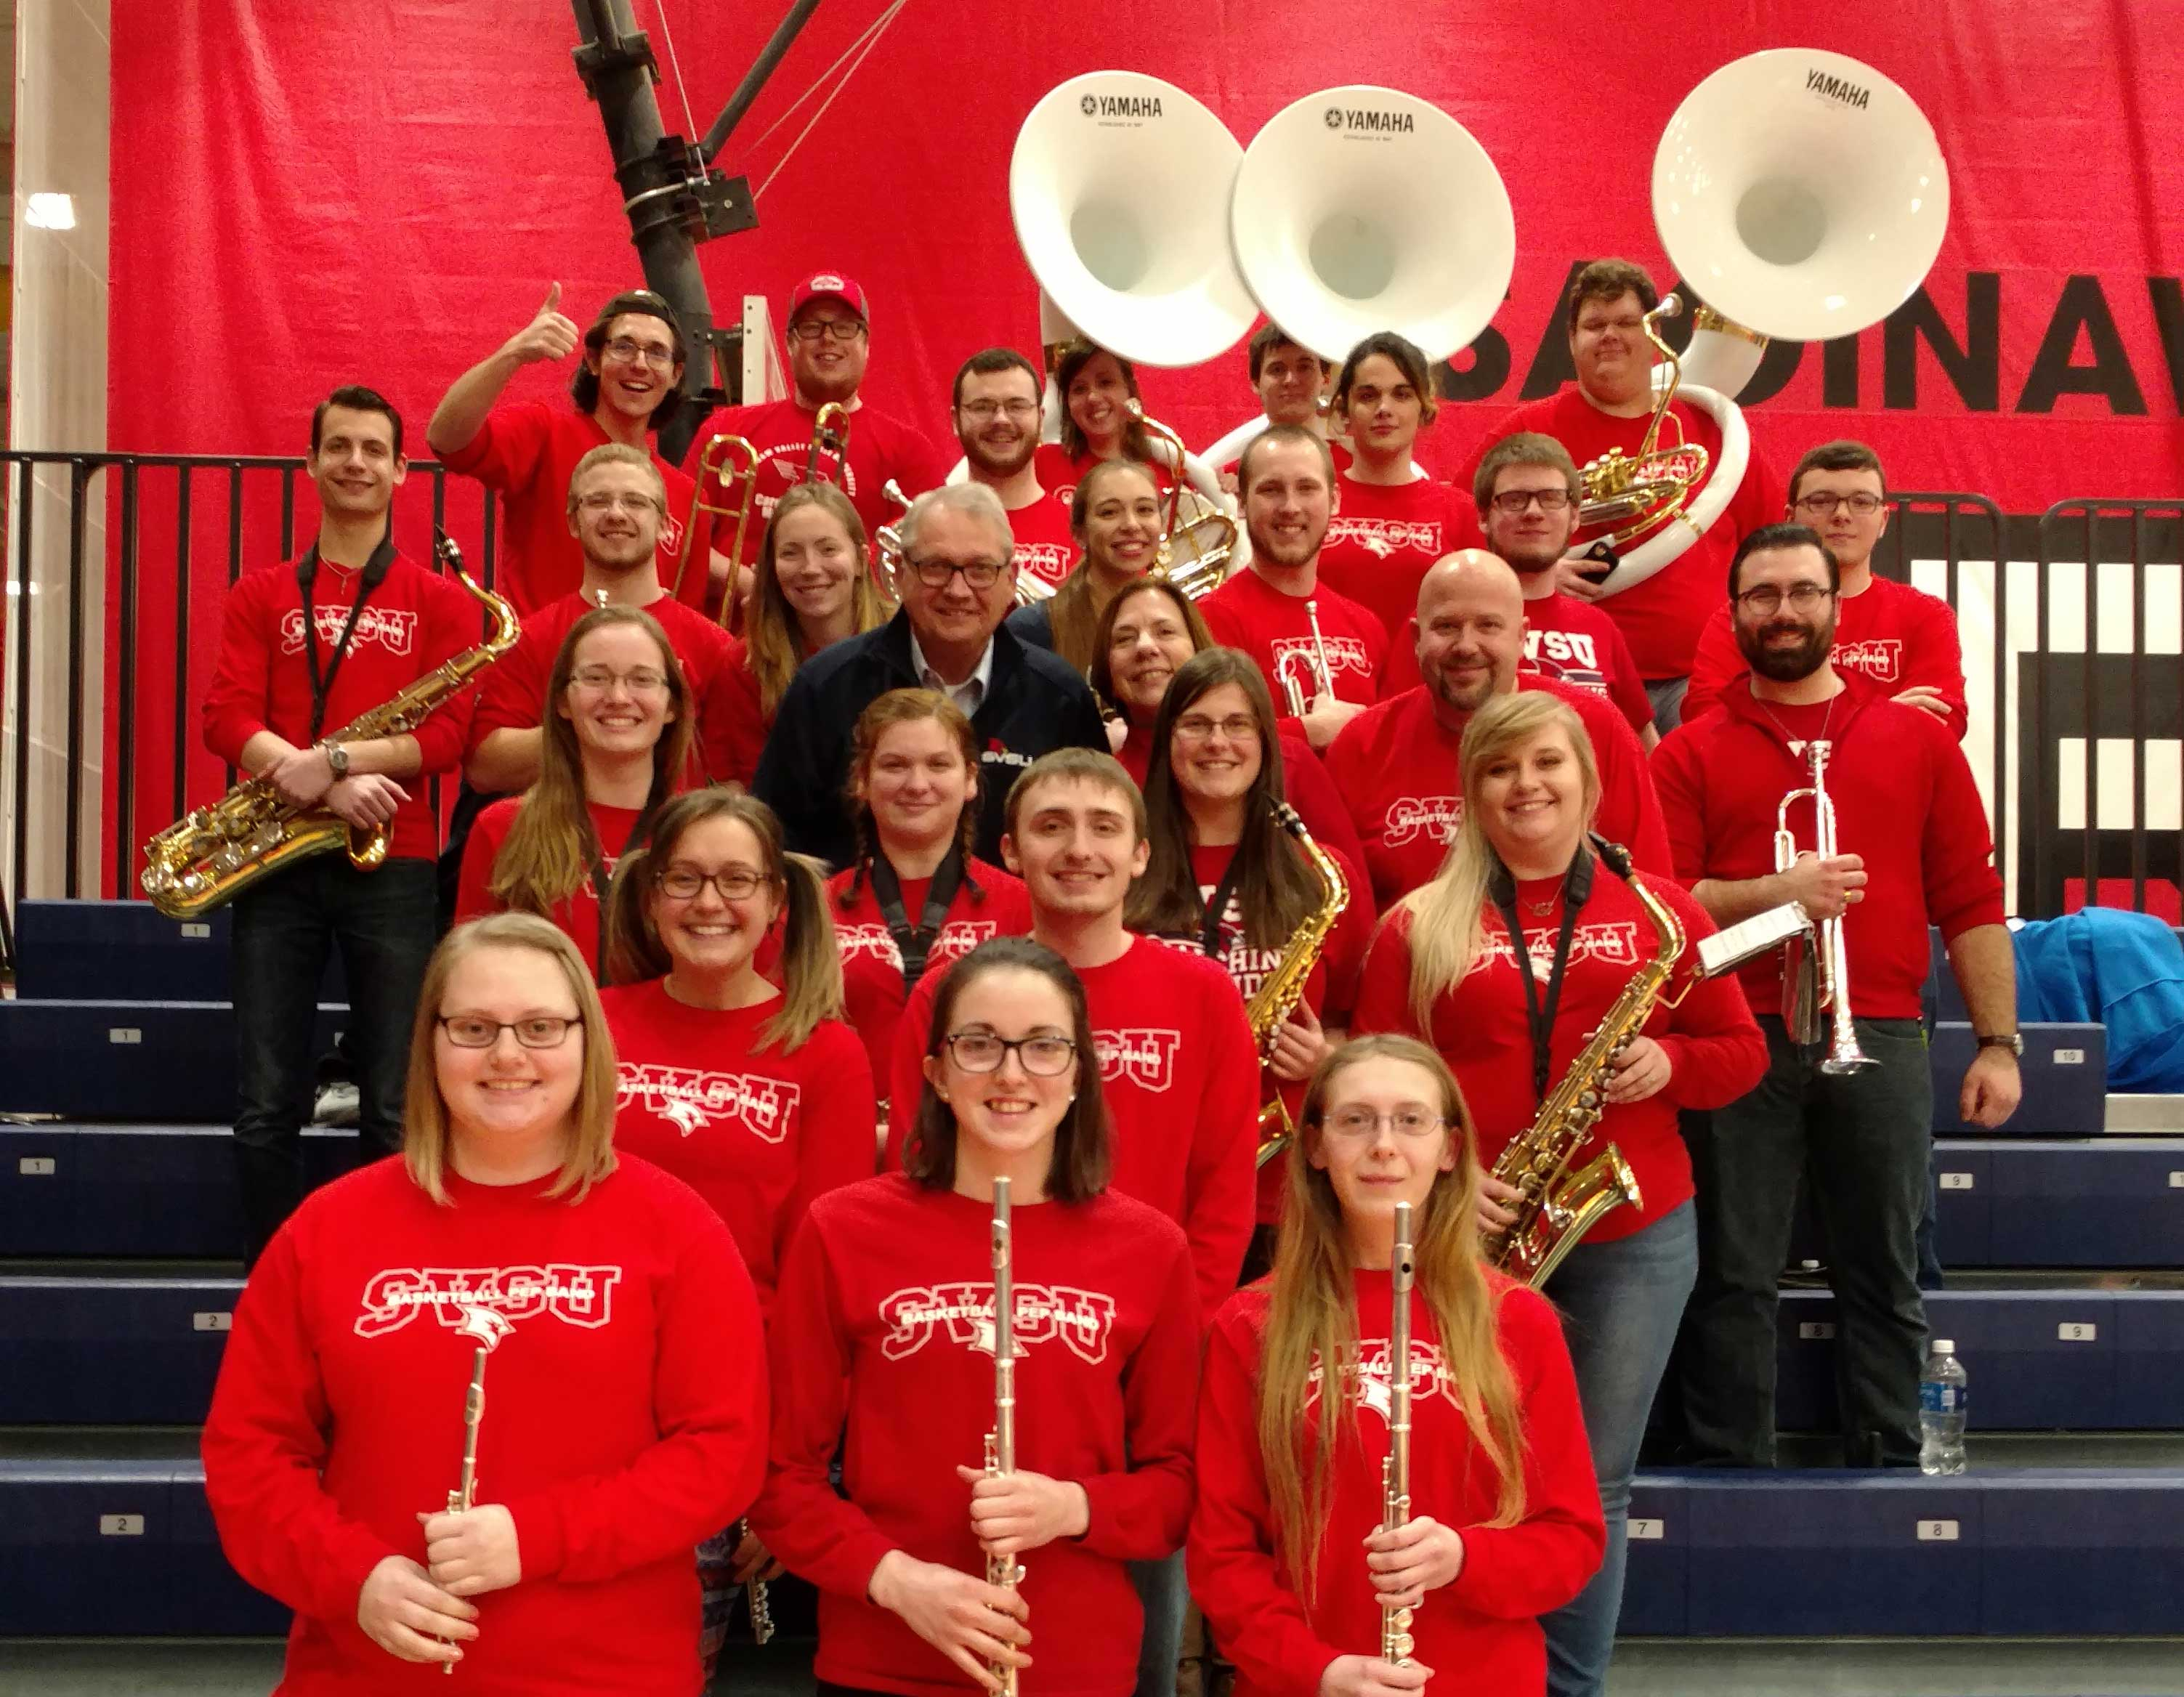 The pep band at the women's basketball game.